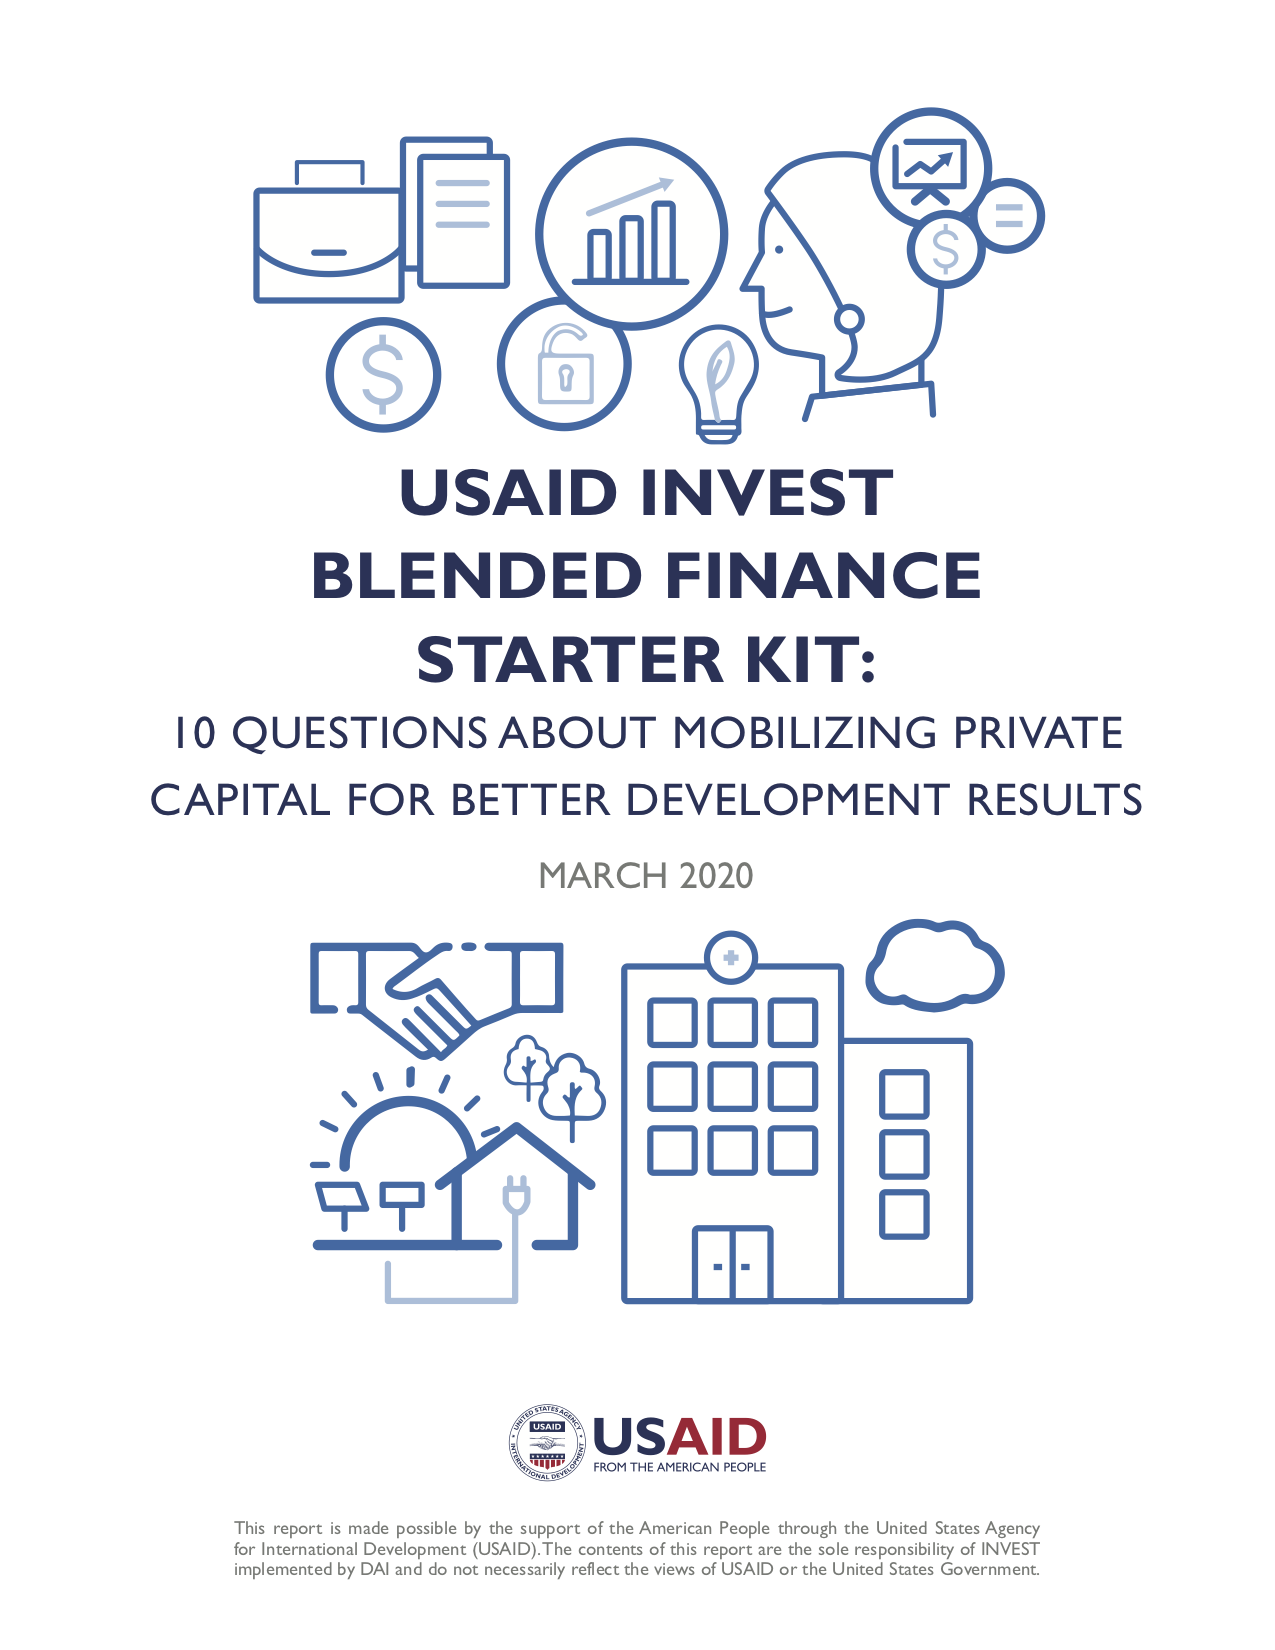 USAID INVEST Blended Finance Starter Kit: 10 Questions for Mobilizing Private Capital for Better Development Results